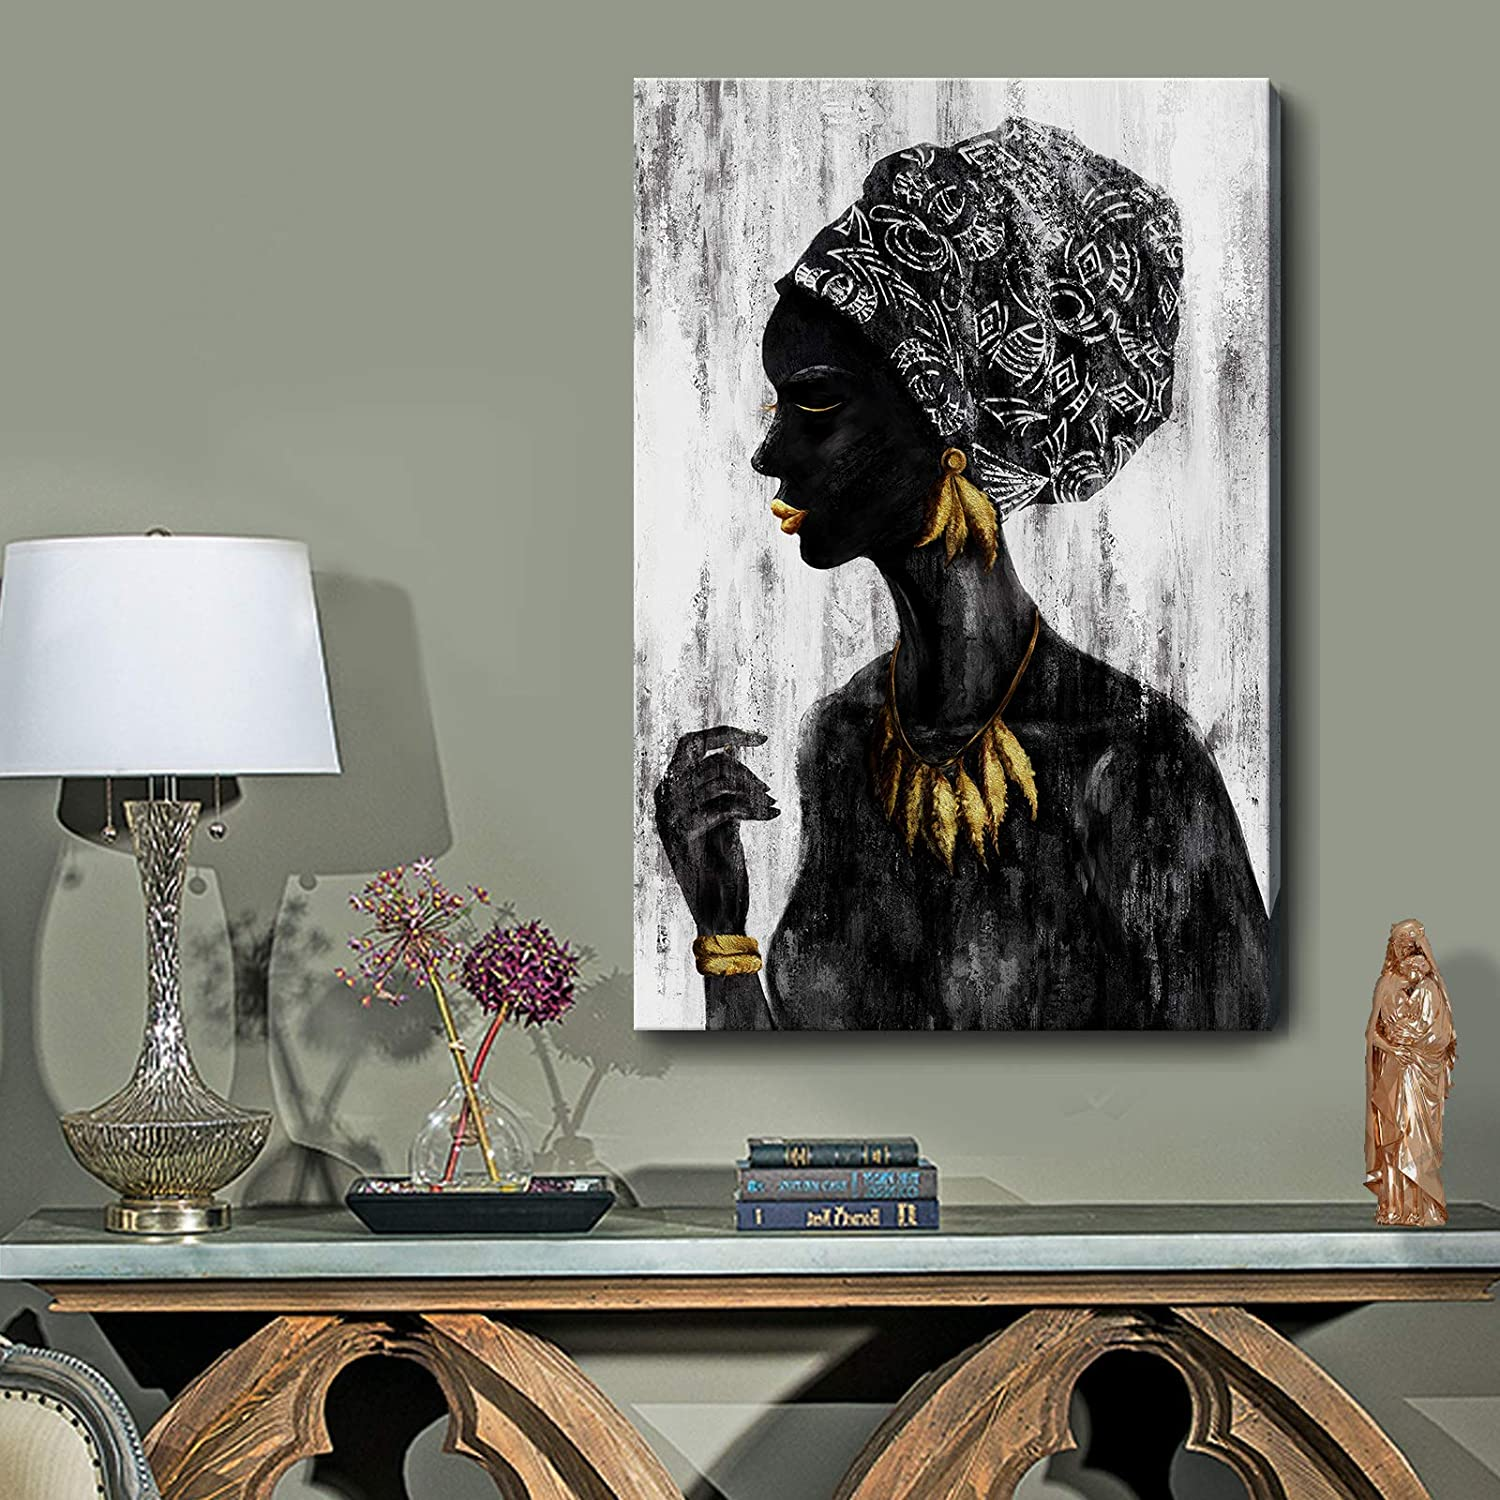 Black and White Wall Art African American Framed Retro Wall Picture Traditional Women Girl with Gold Accessories Wall Picture Tribal African Female Portrait Artwork for Home Bathroom Bedroom Vintage Décor